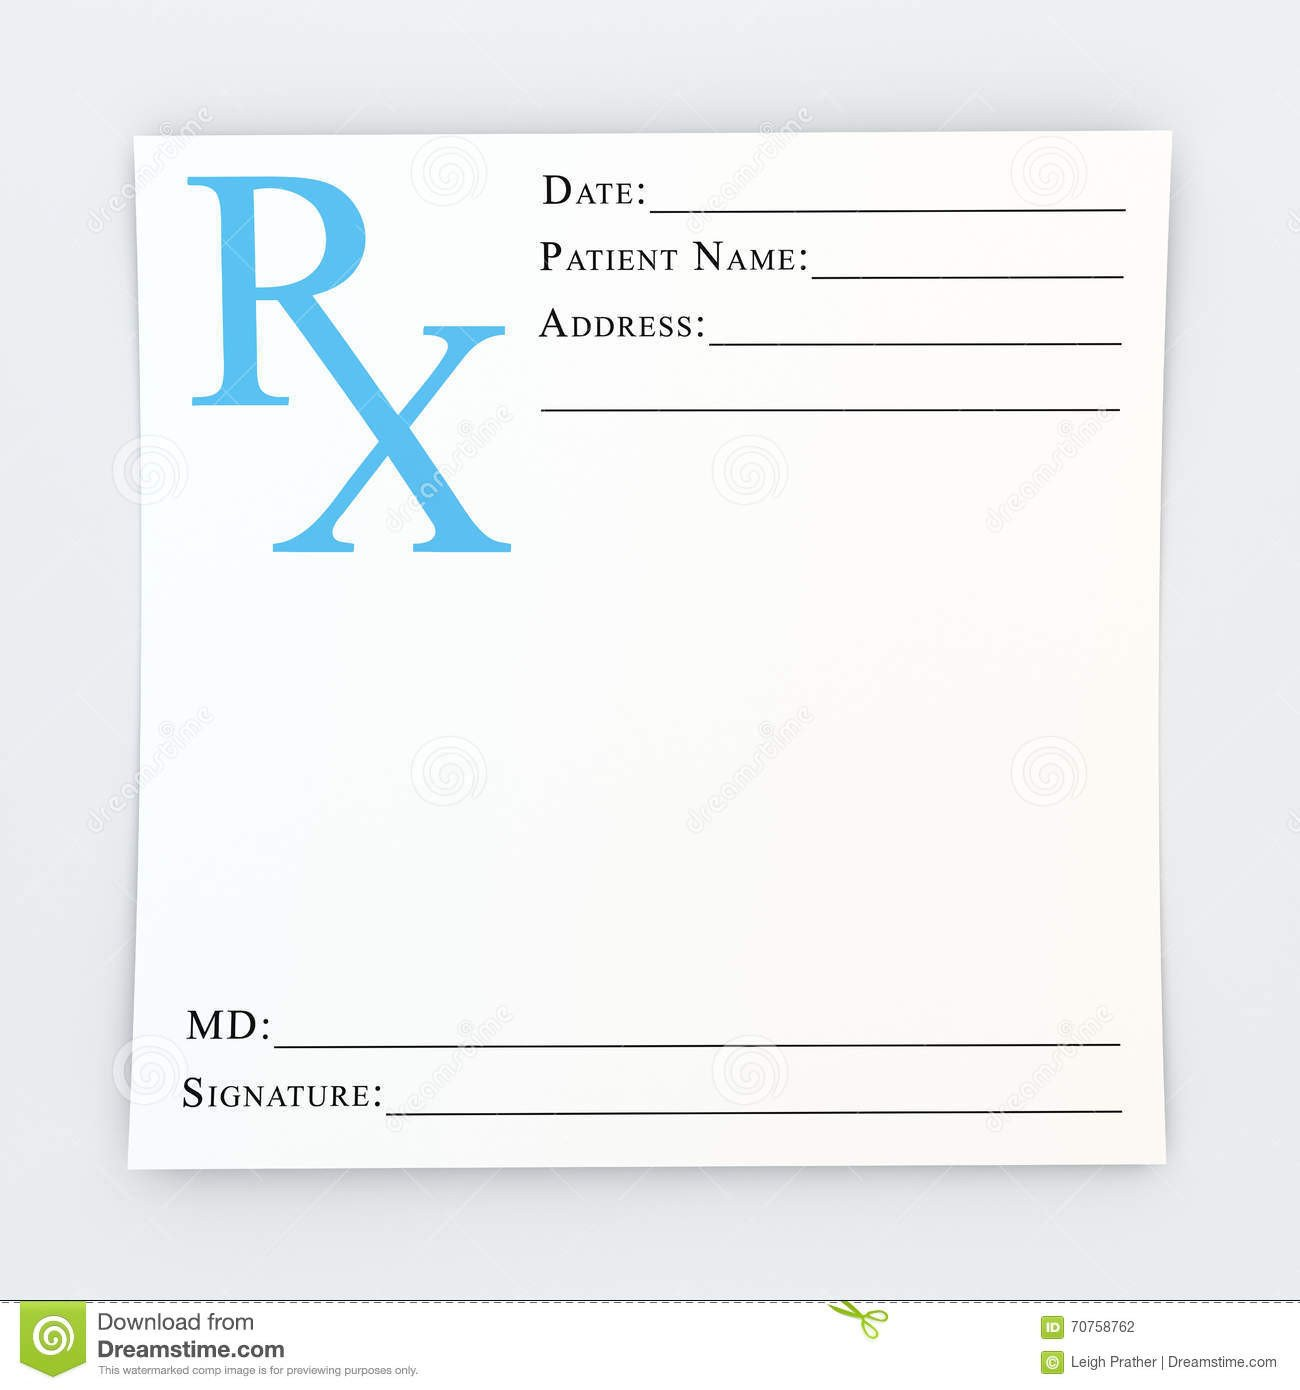 Picture Of Prescription Pad Blank Prescription Stock Illustration Illustration Of